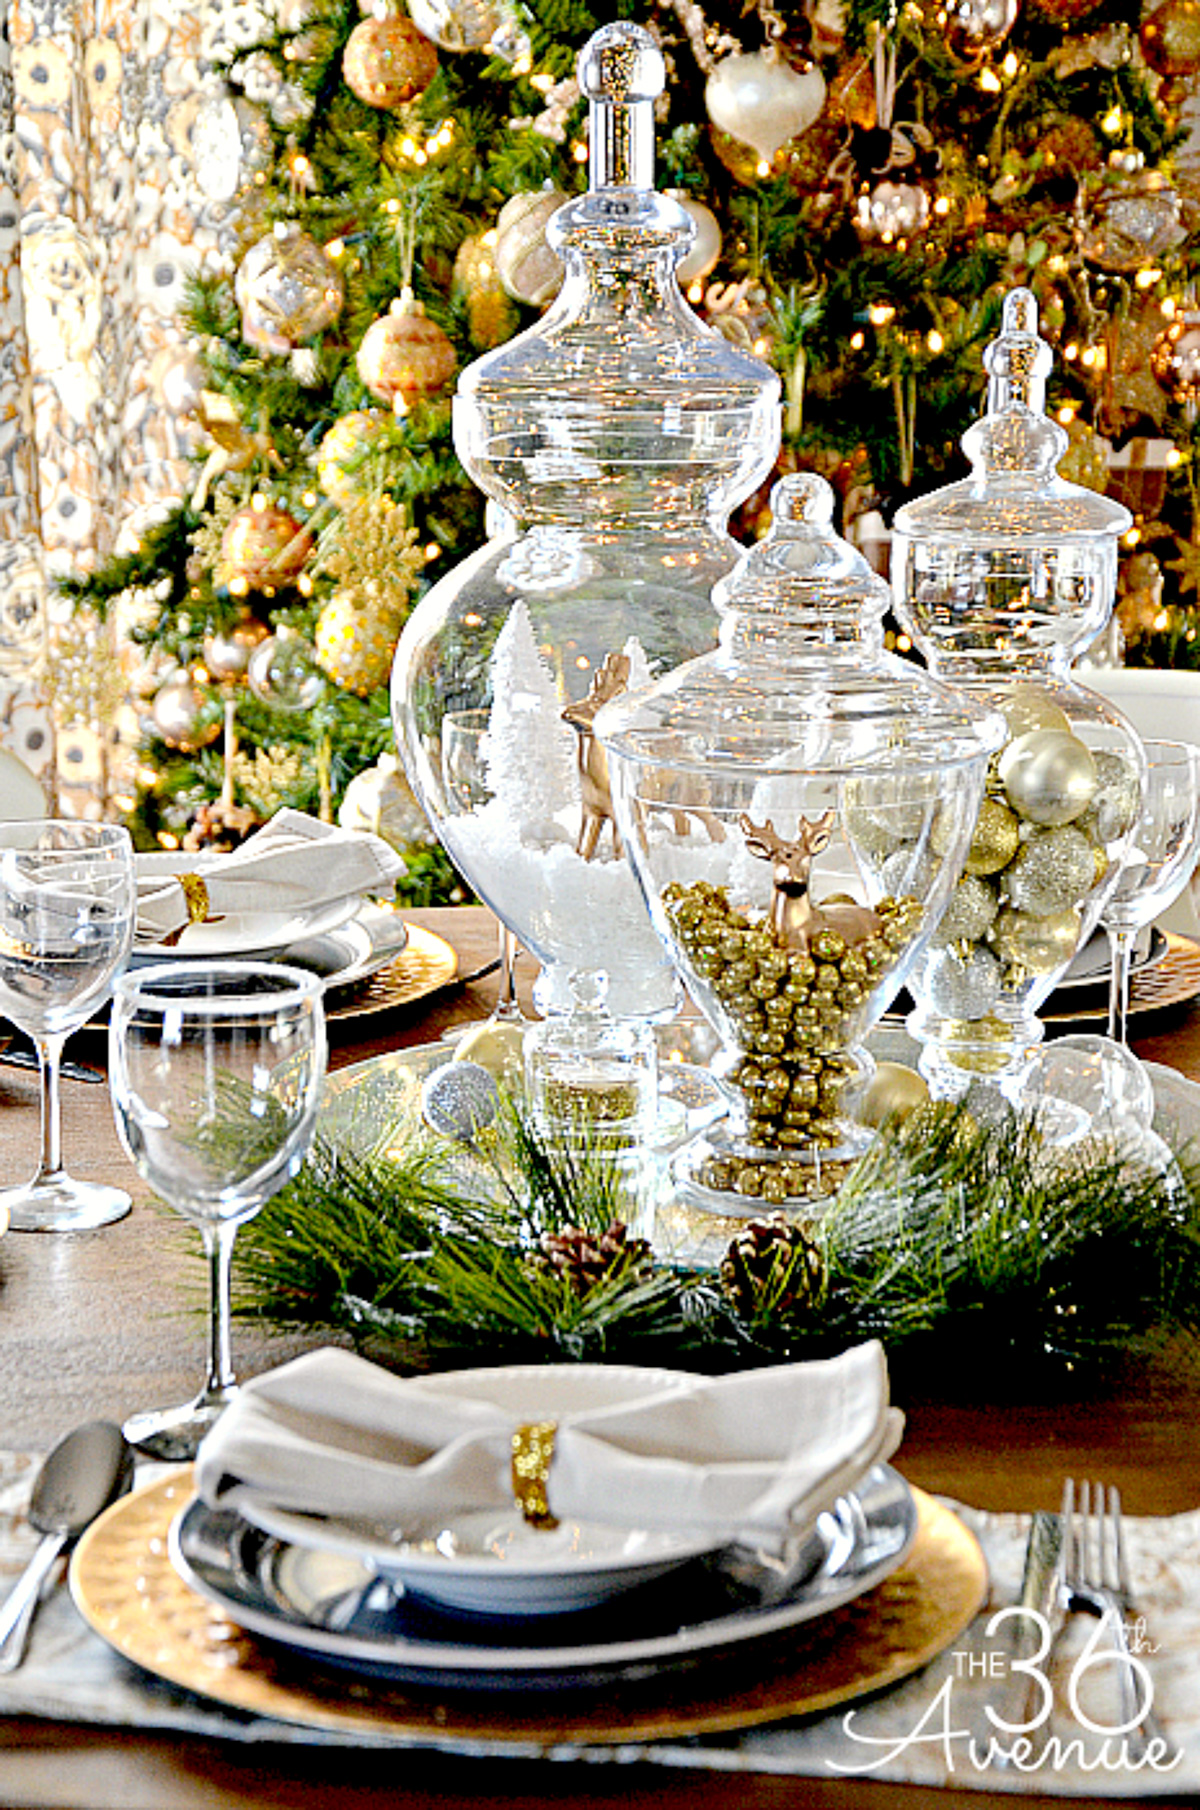 Transform your tablescape with these 20 festive settings Christmas place setting ideas